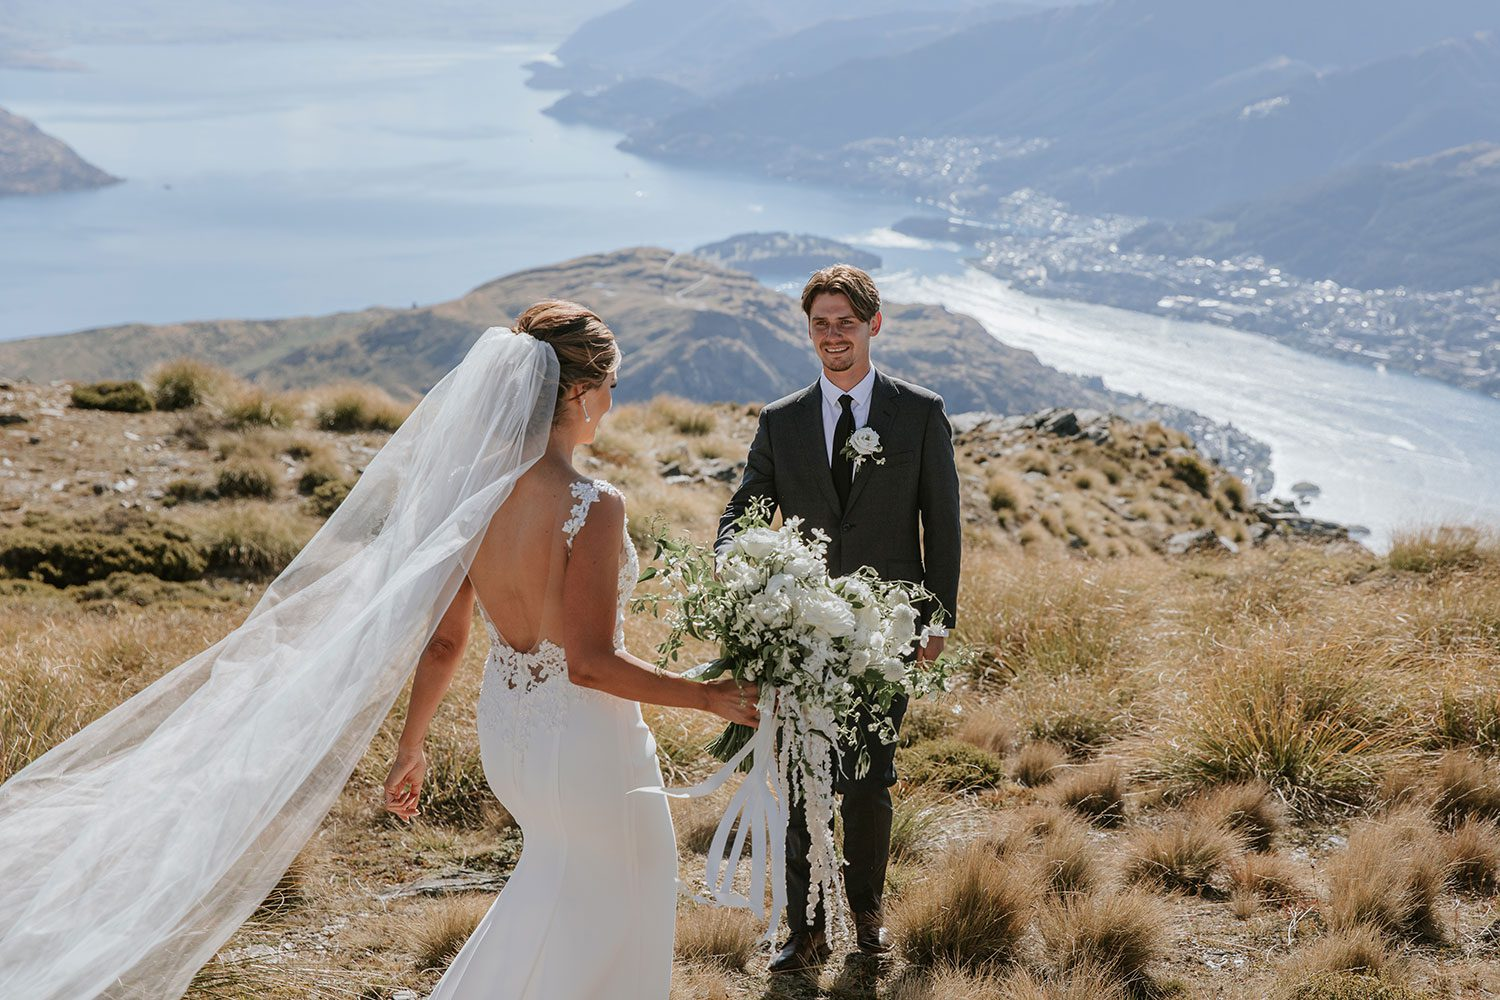 Bride wearing bespoke bridal gown with richly beaded lace over sheer tulle bodice and low back from Auckland wedding dress maker Vinka designs - meeting groom on hill